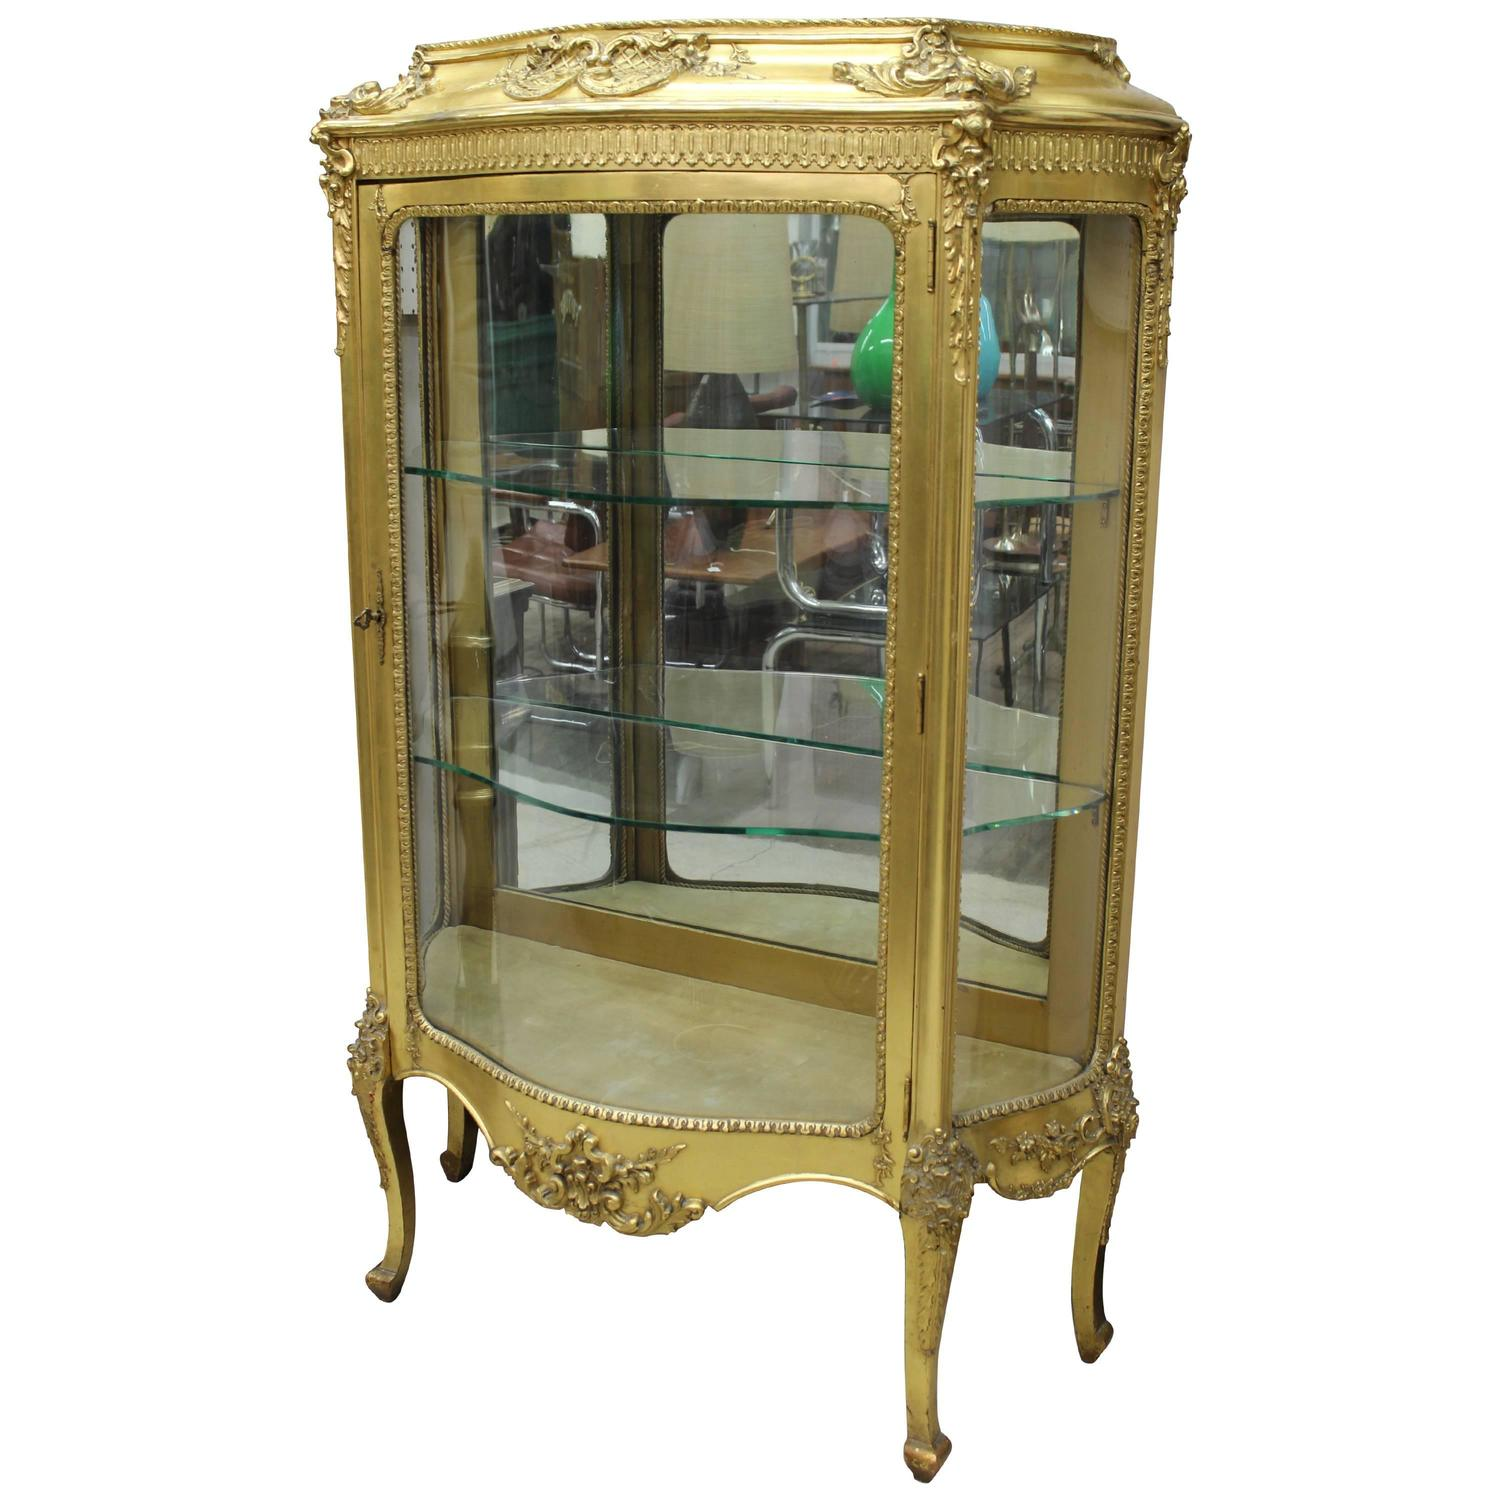 french louis xv style giltwood vitrine or display case or cabinet for sale at 1stdibs. Black Bedroom Furniture Sets. Home Design Ideas